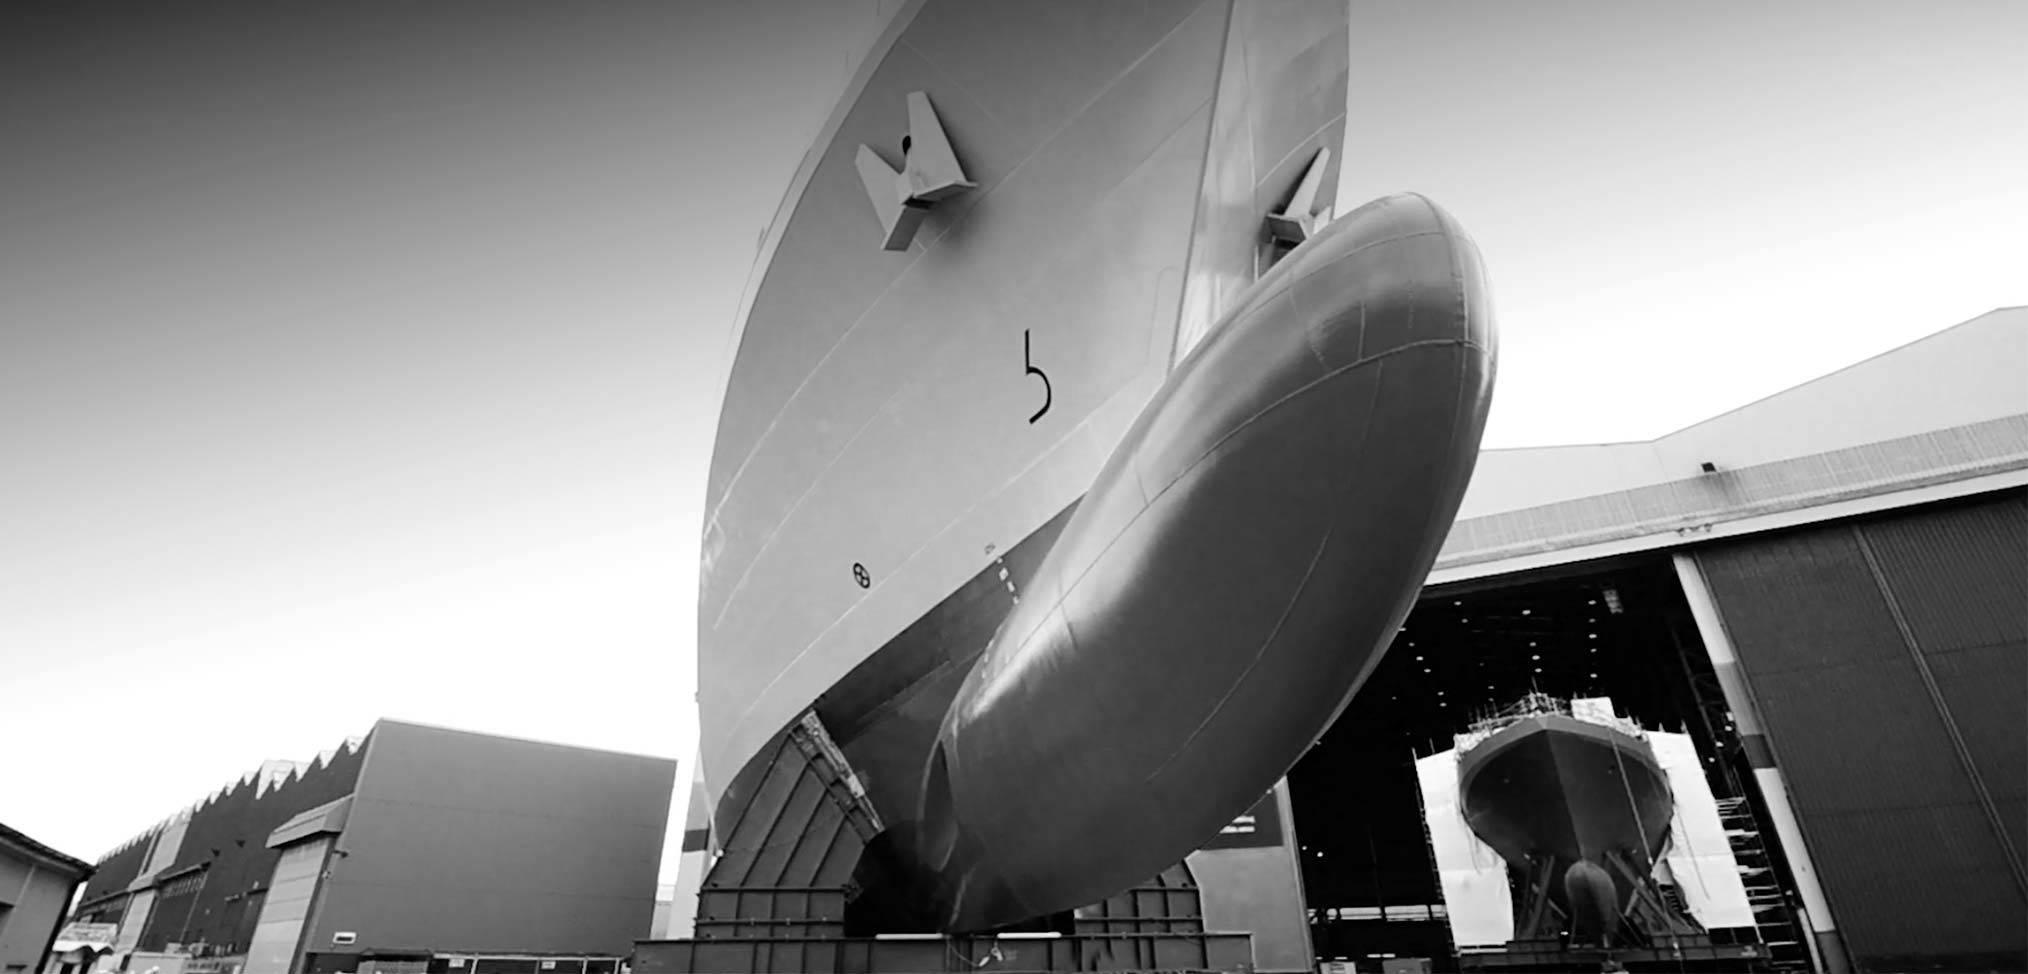 All-Party Parliamentary Group for Shipbuilding publish report on the industry